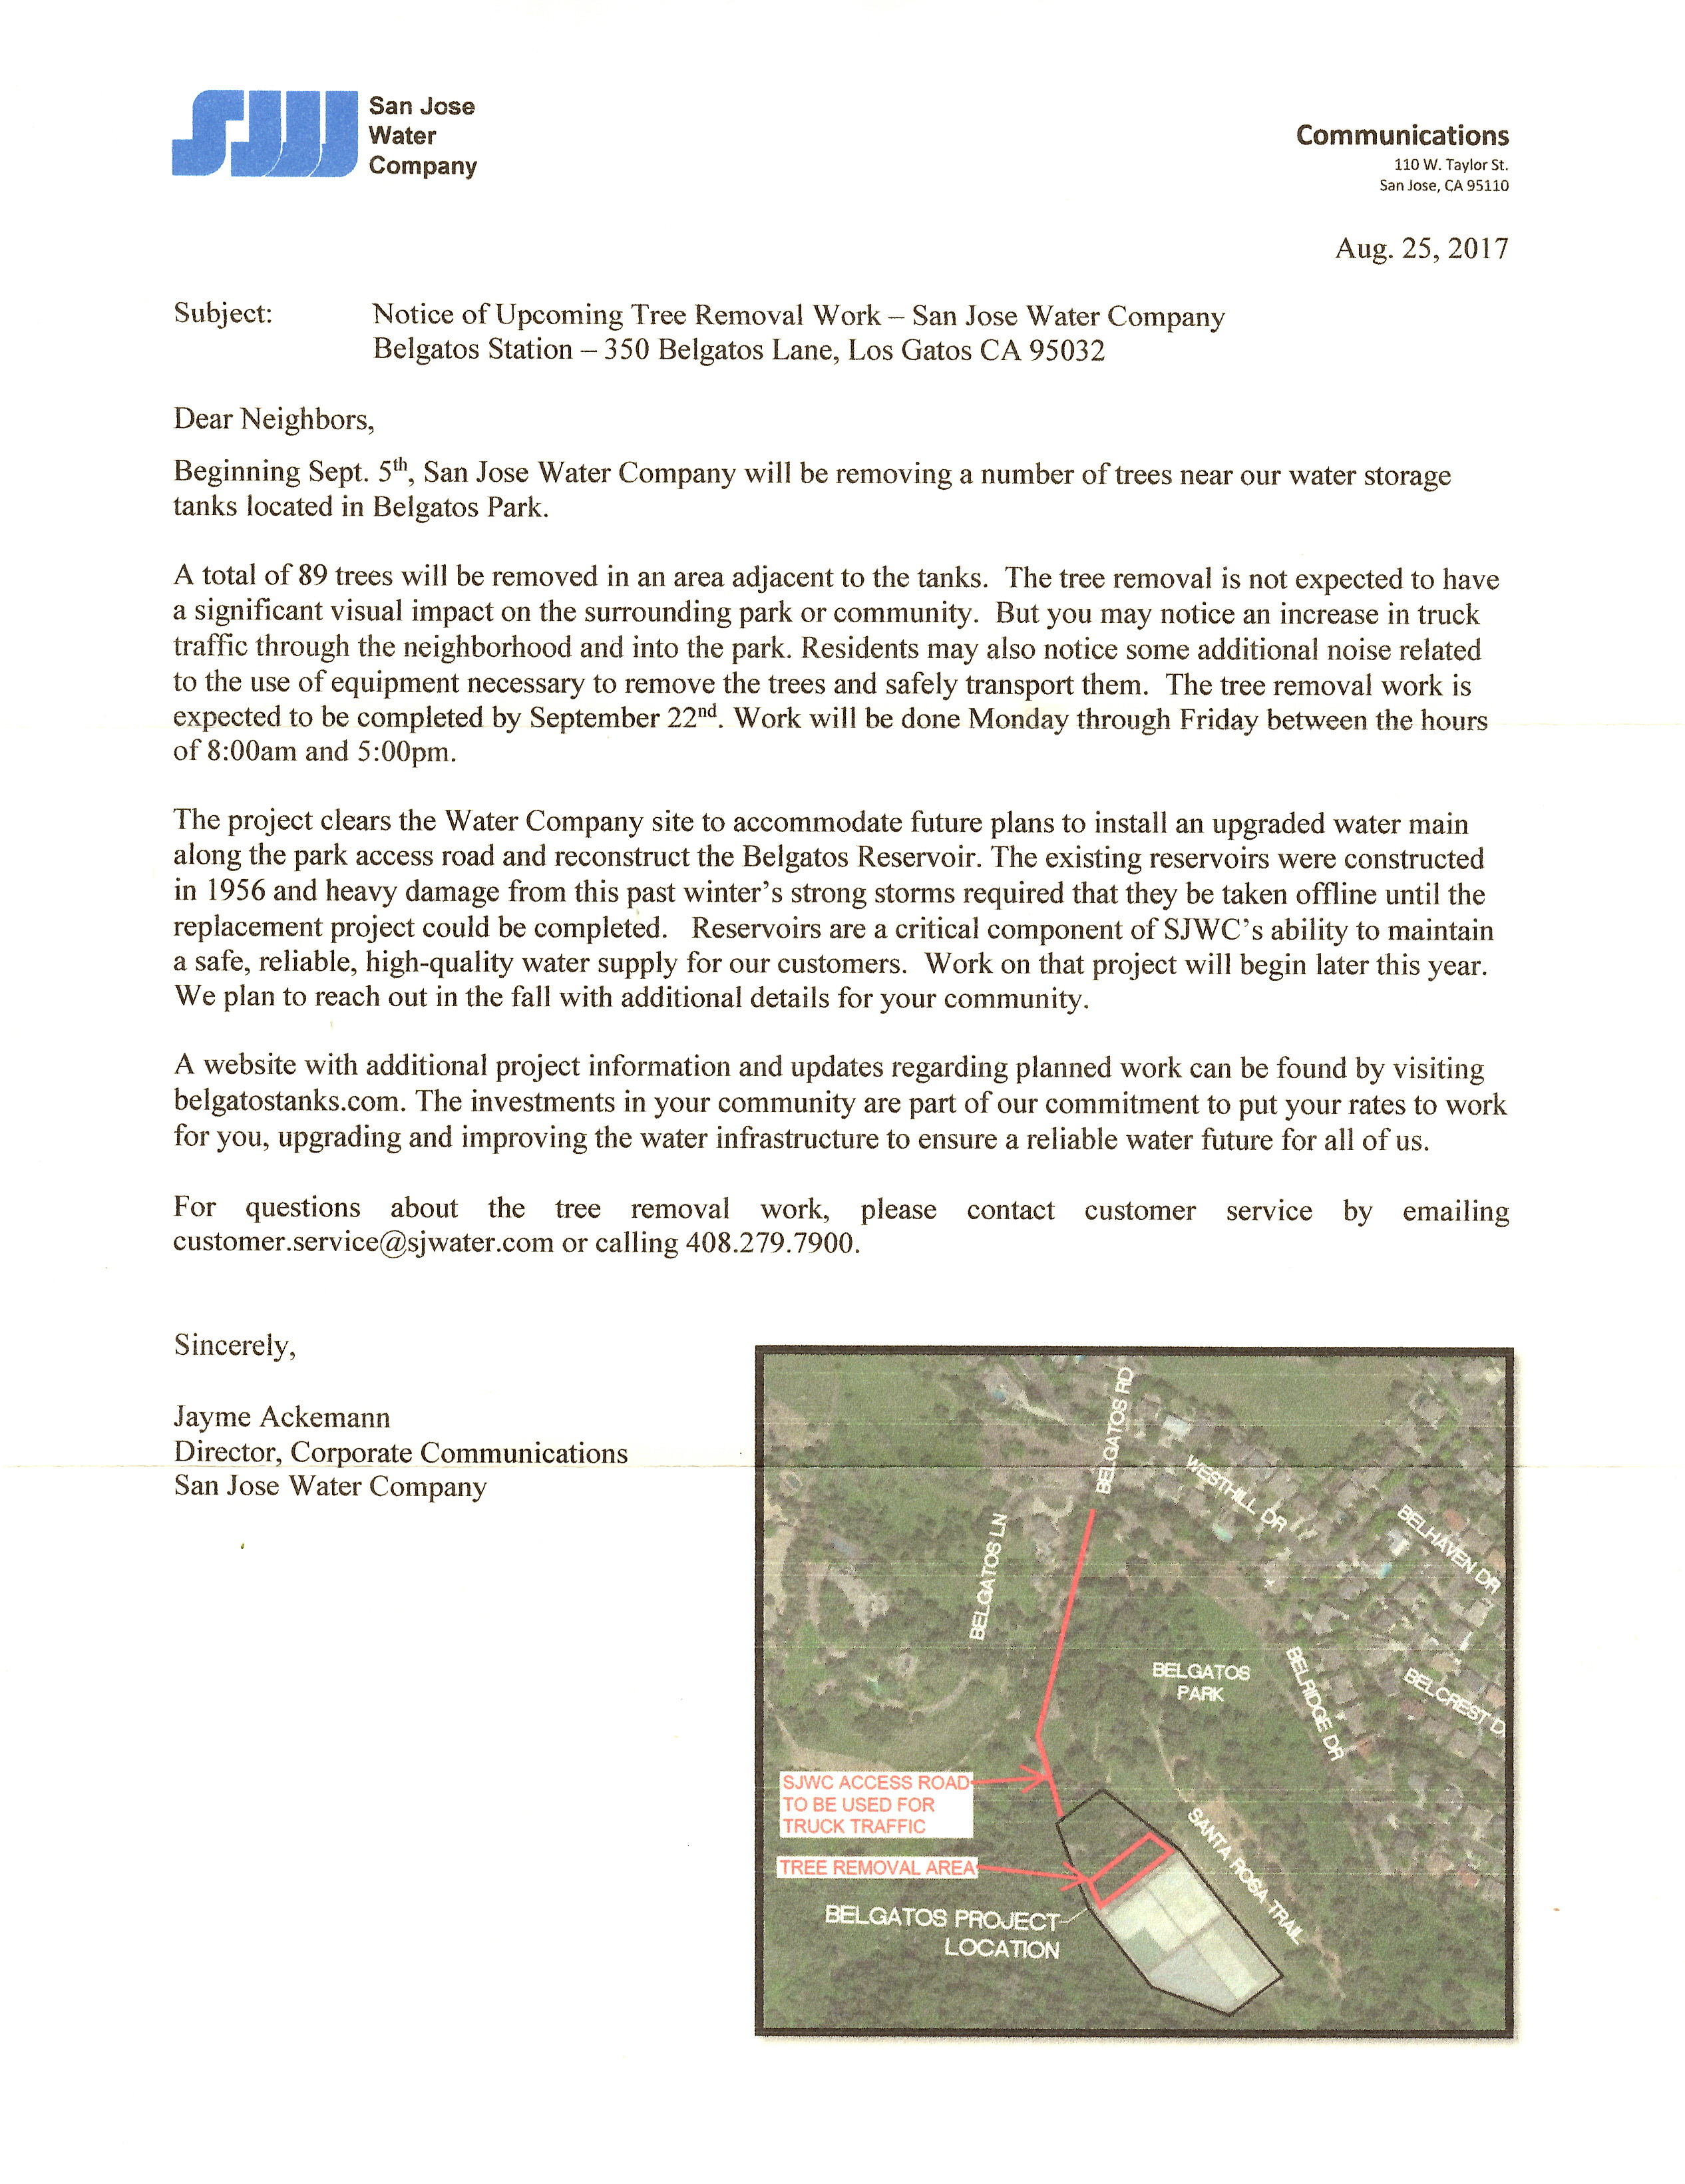 San Jose Water District letter regarding tree removal and work at the reservoir in Belgatos Park